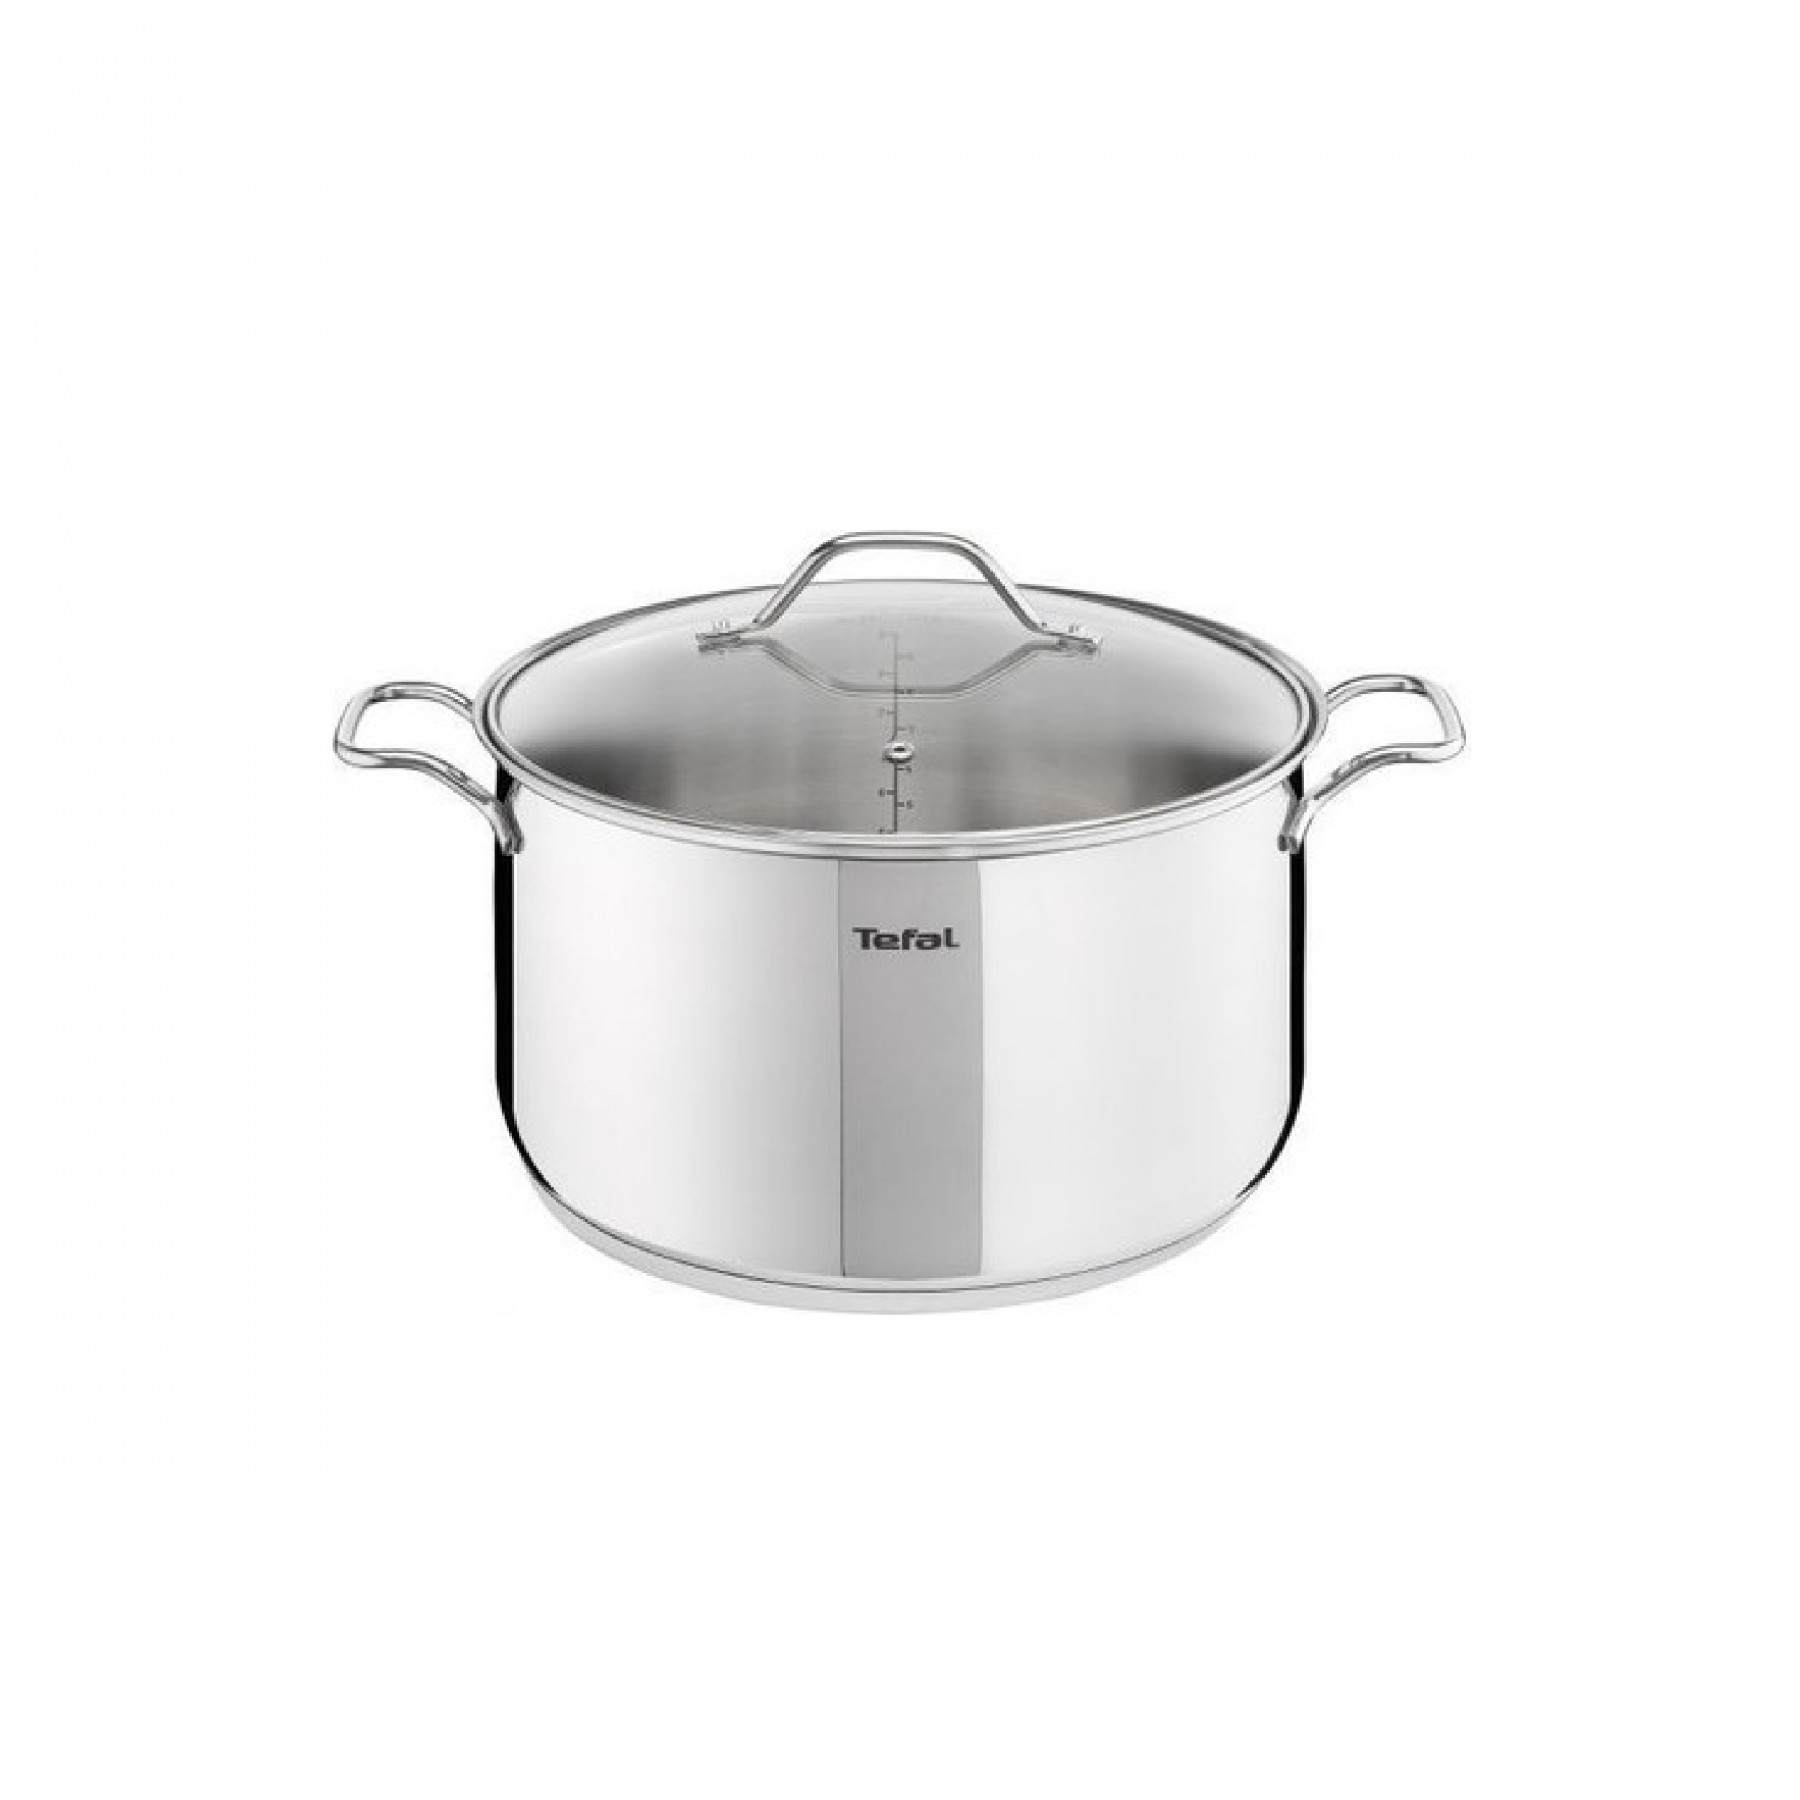 TEFAL Intuition XL Large Stainless Steel Stock Pot 32cm with lid B9087414